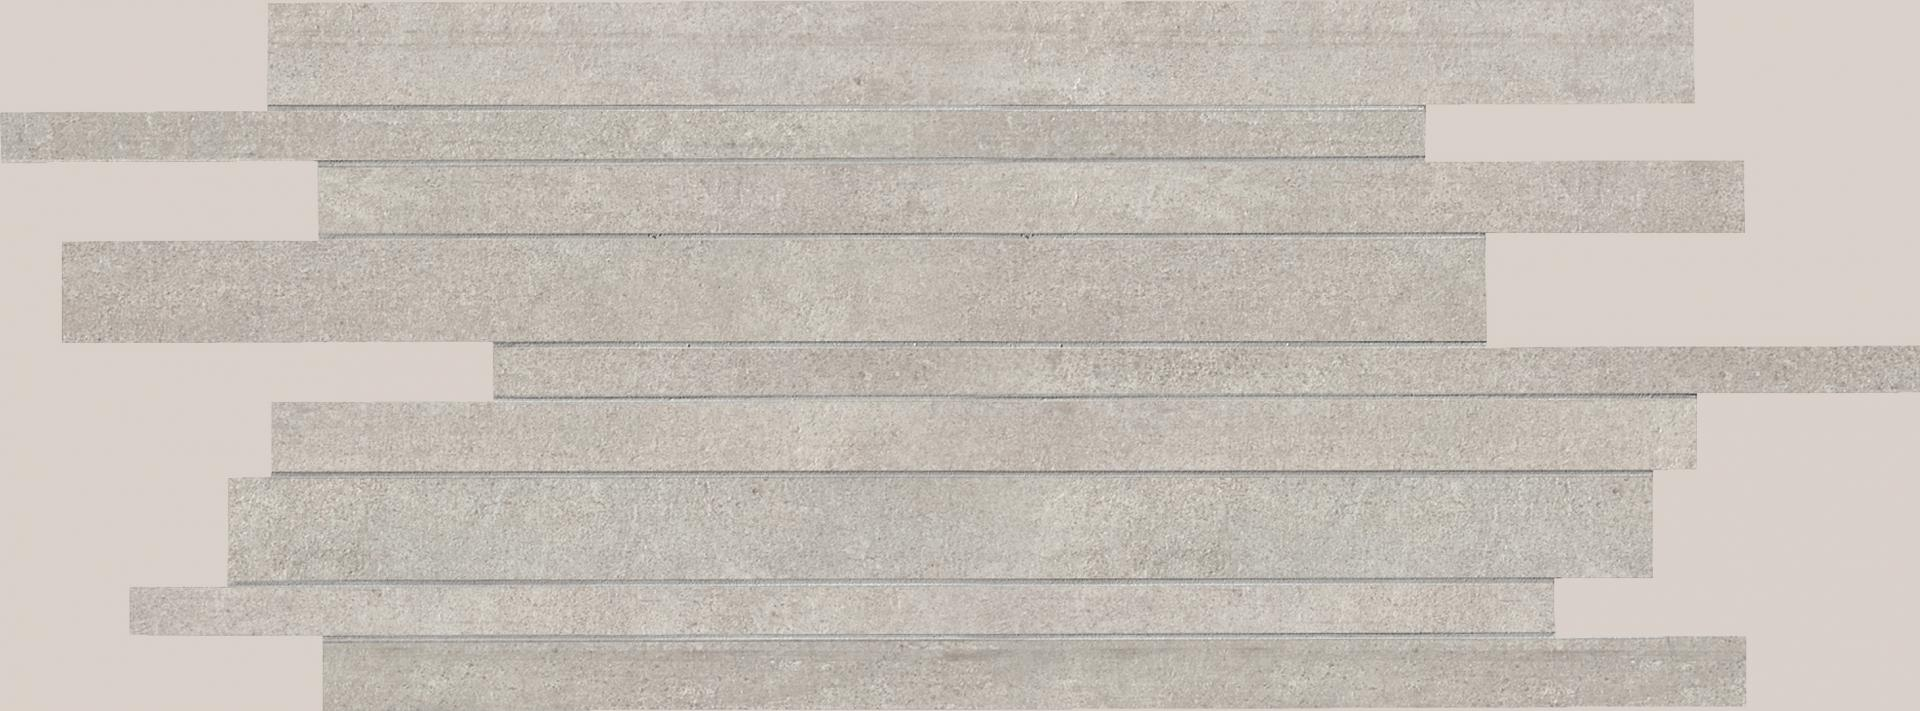 Keope LINK PALE SILVER KE-t2t2 Strips 30X60 naturale R9